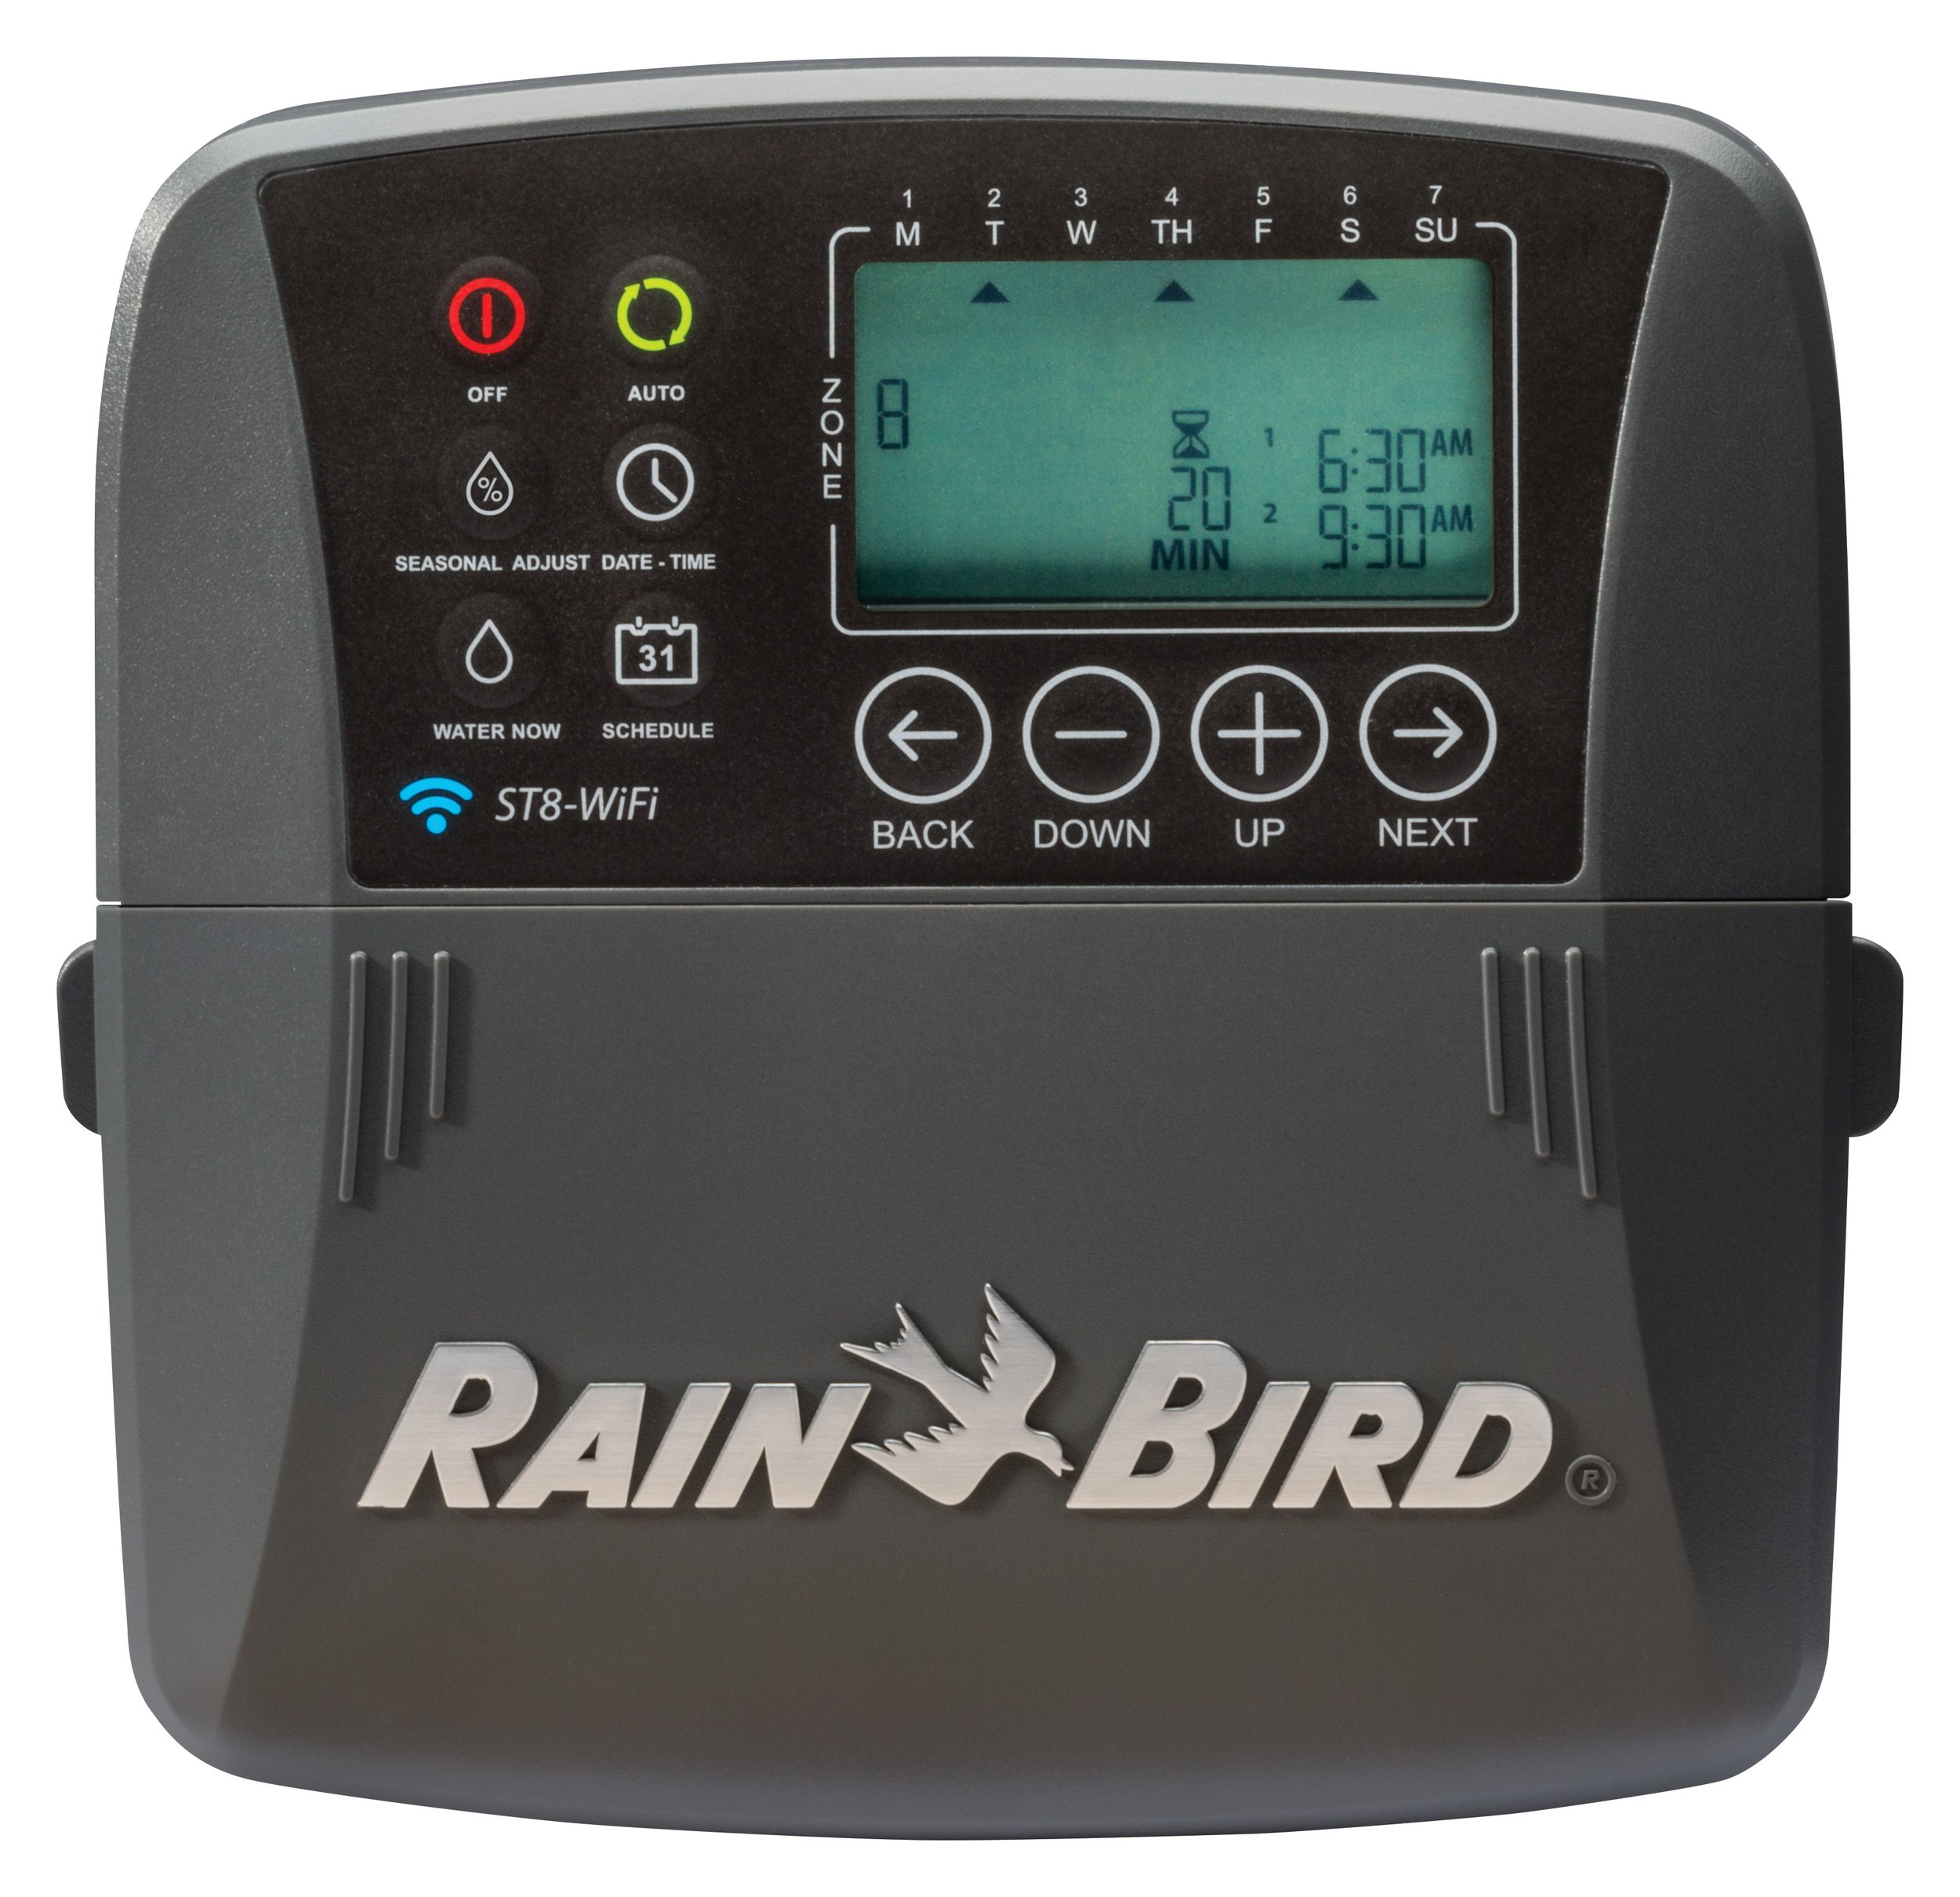 Rain Bird ST8I-WIFI Smart Indoor WiFi Sprinkler/Irrigation System Timer/Controller, WaterSense Certified, 8-Zone/Station, Works with Amazon Alexa by Rain Bird